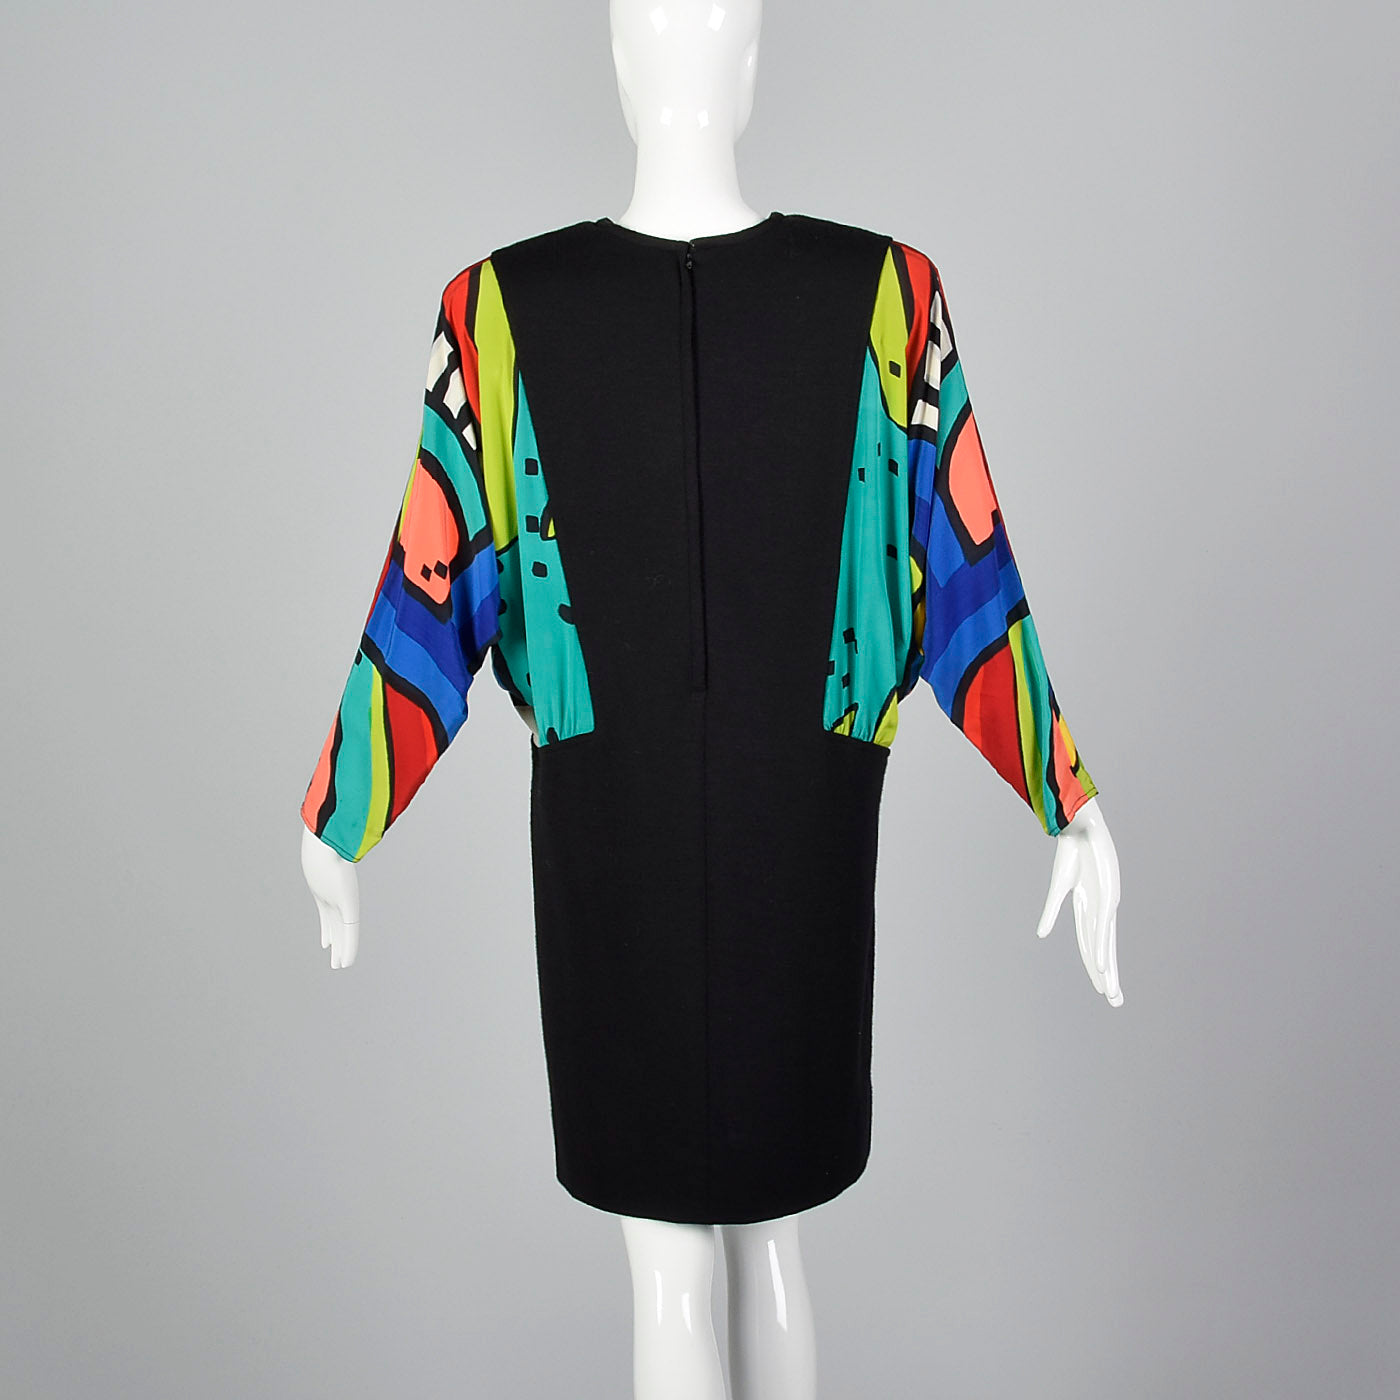 1980s Black Knit Dress with Colorful Silk Batwing Sleeves